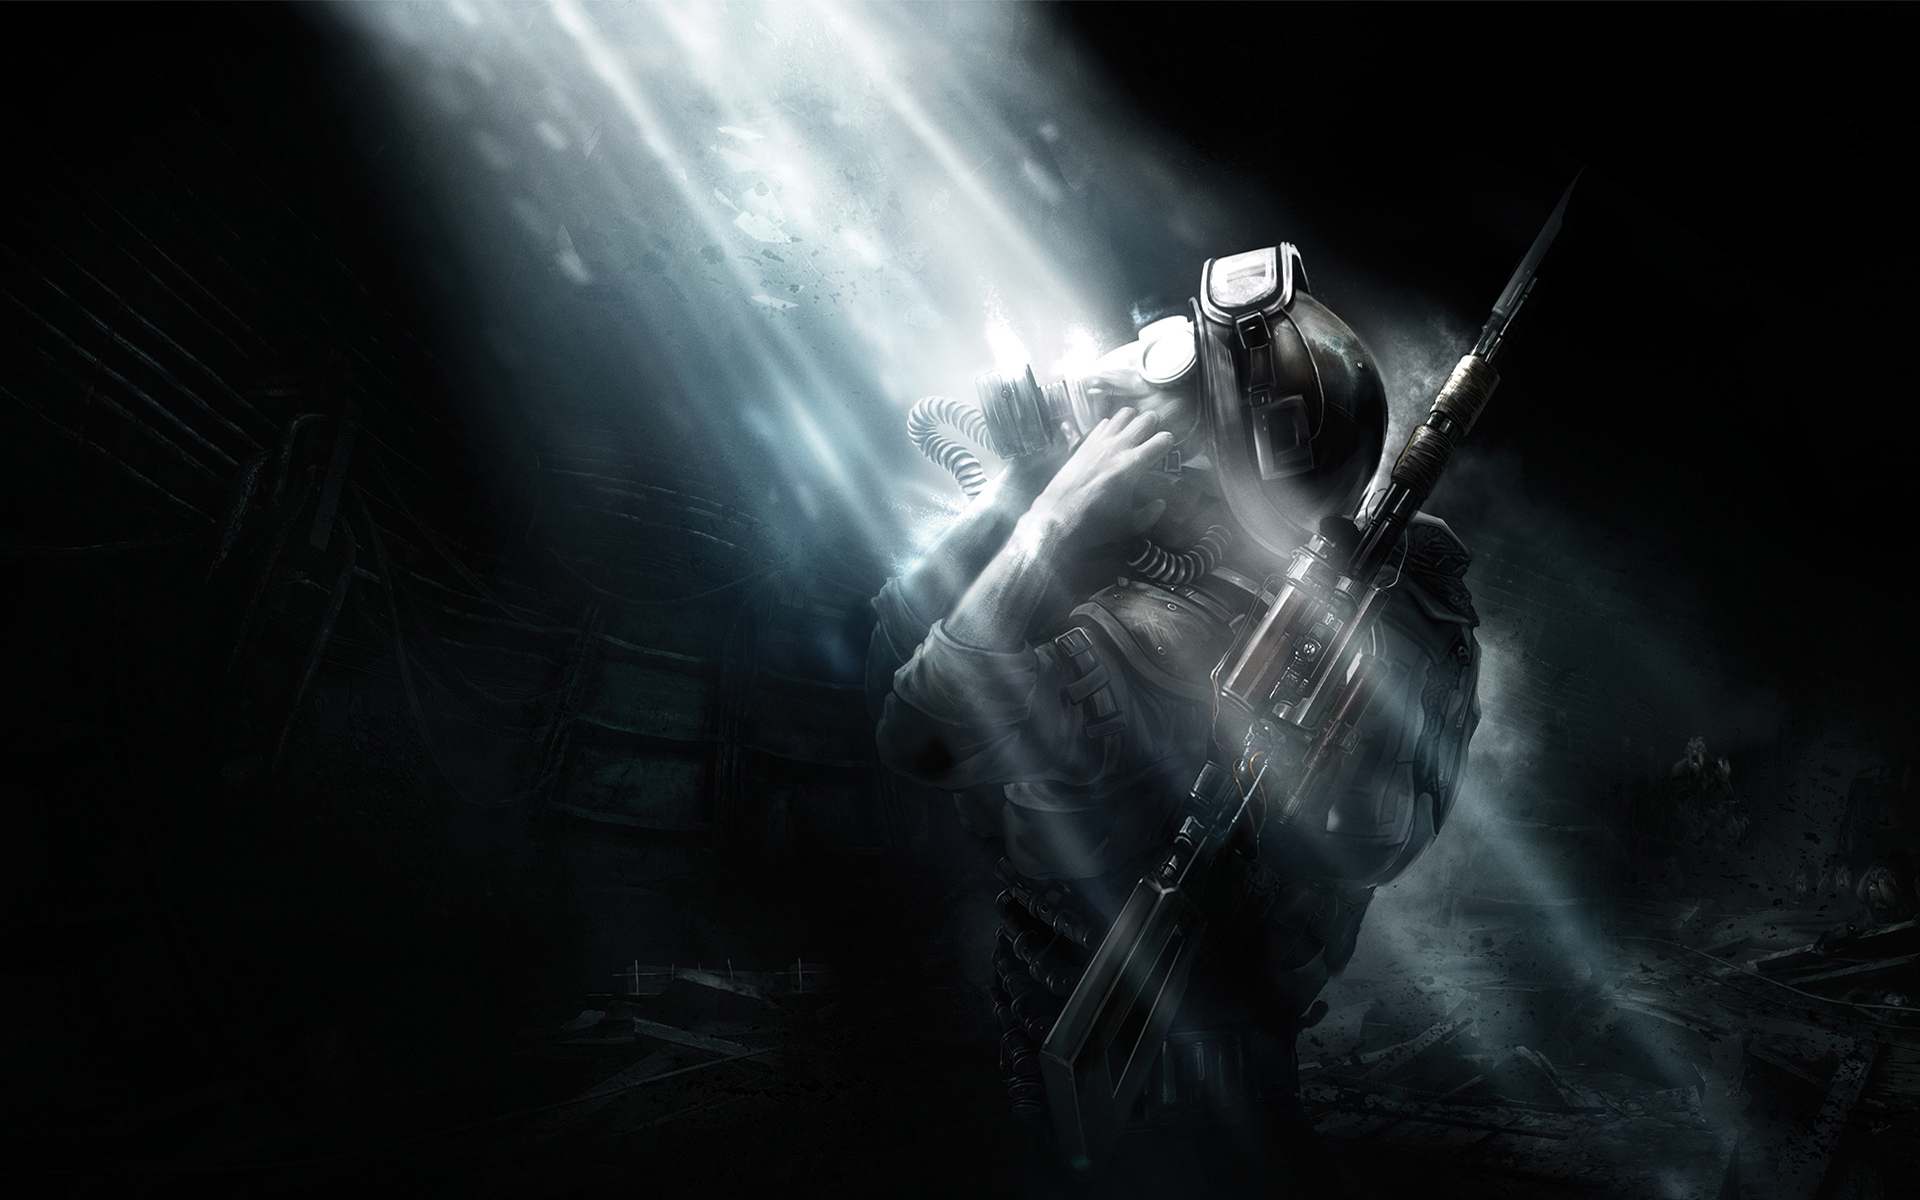 29653 download wallpaper Games, Metro 2033 screensavers and pictures for free